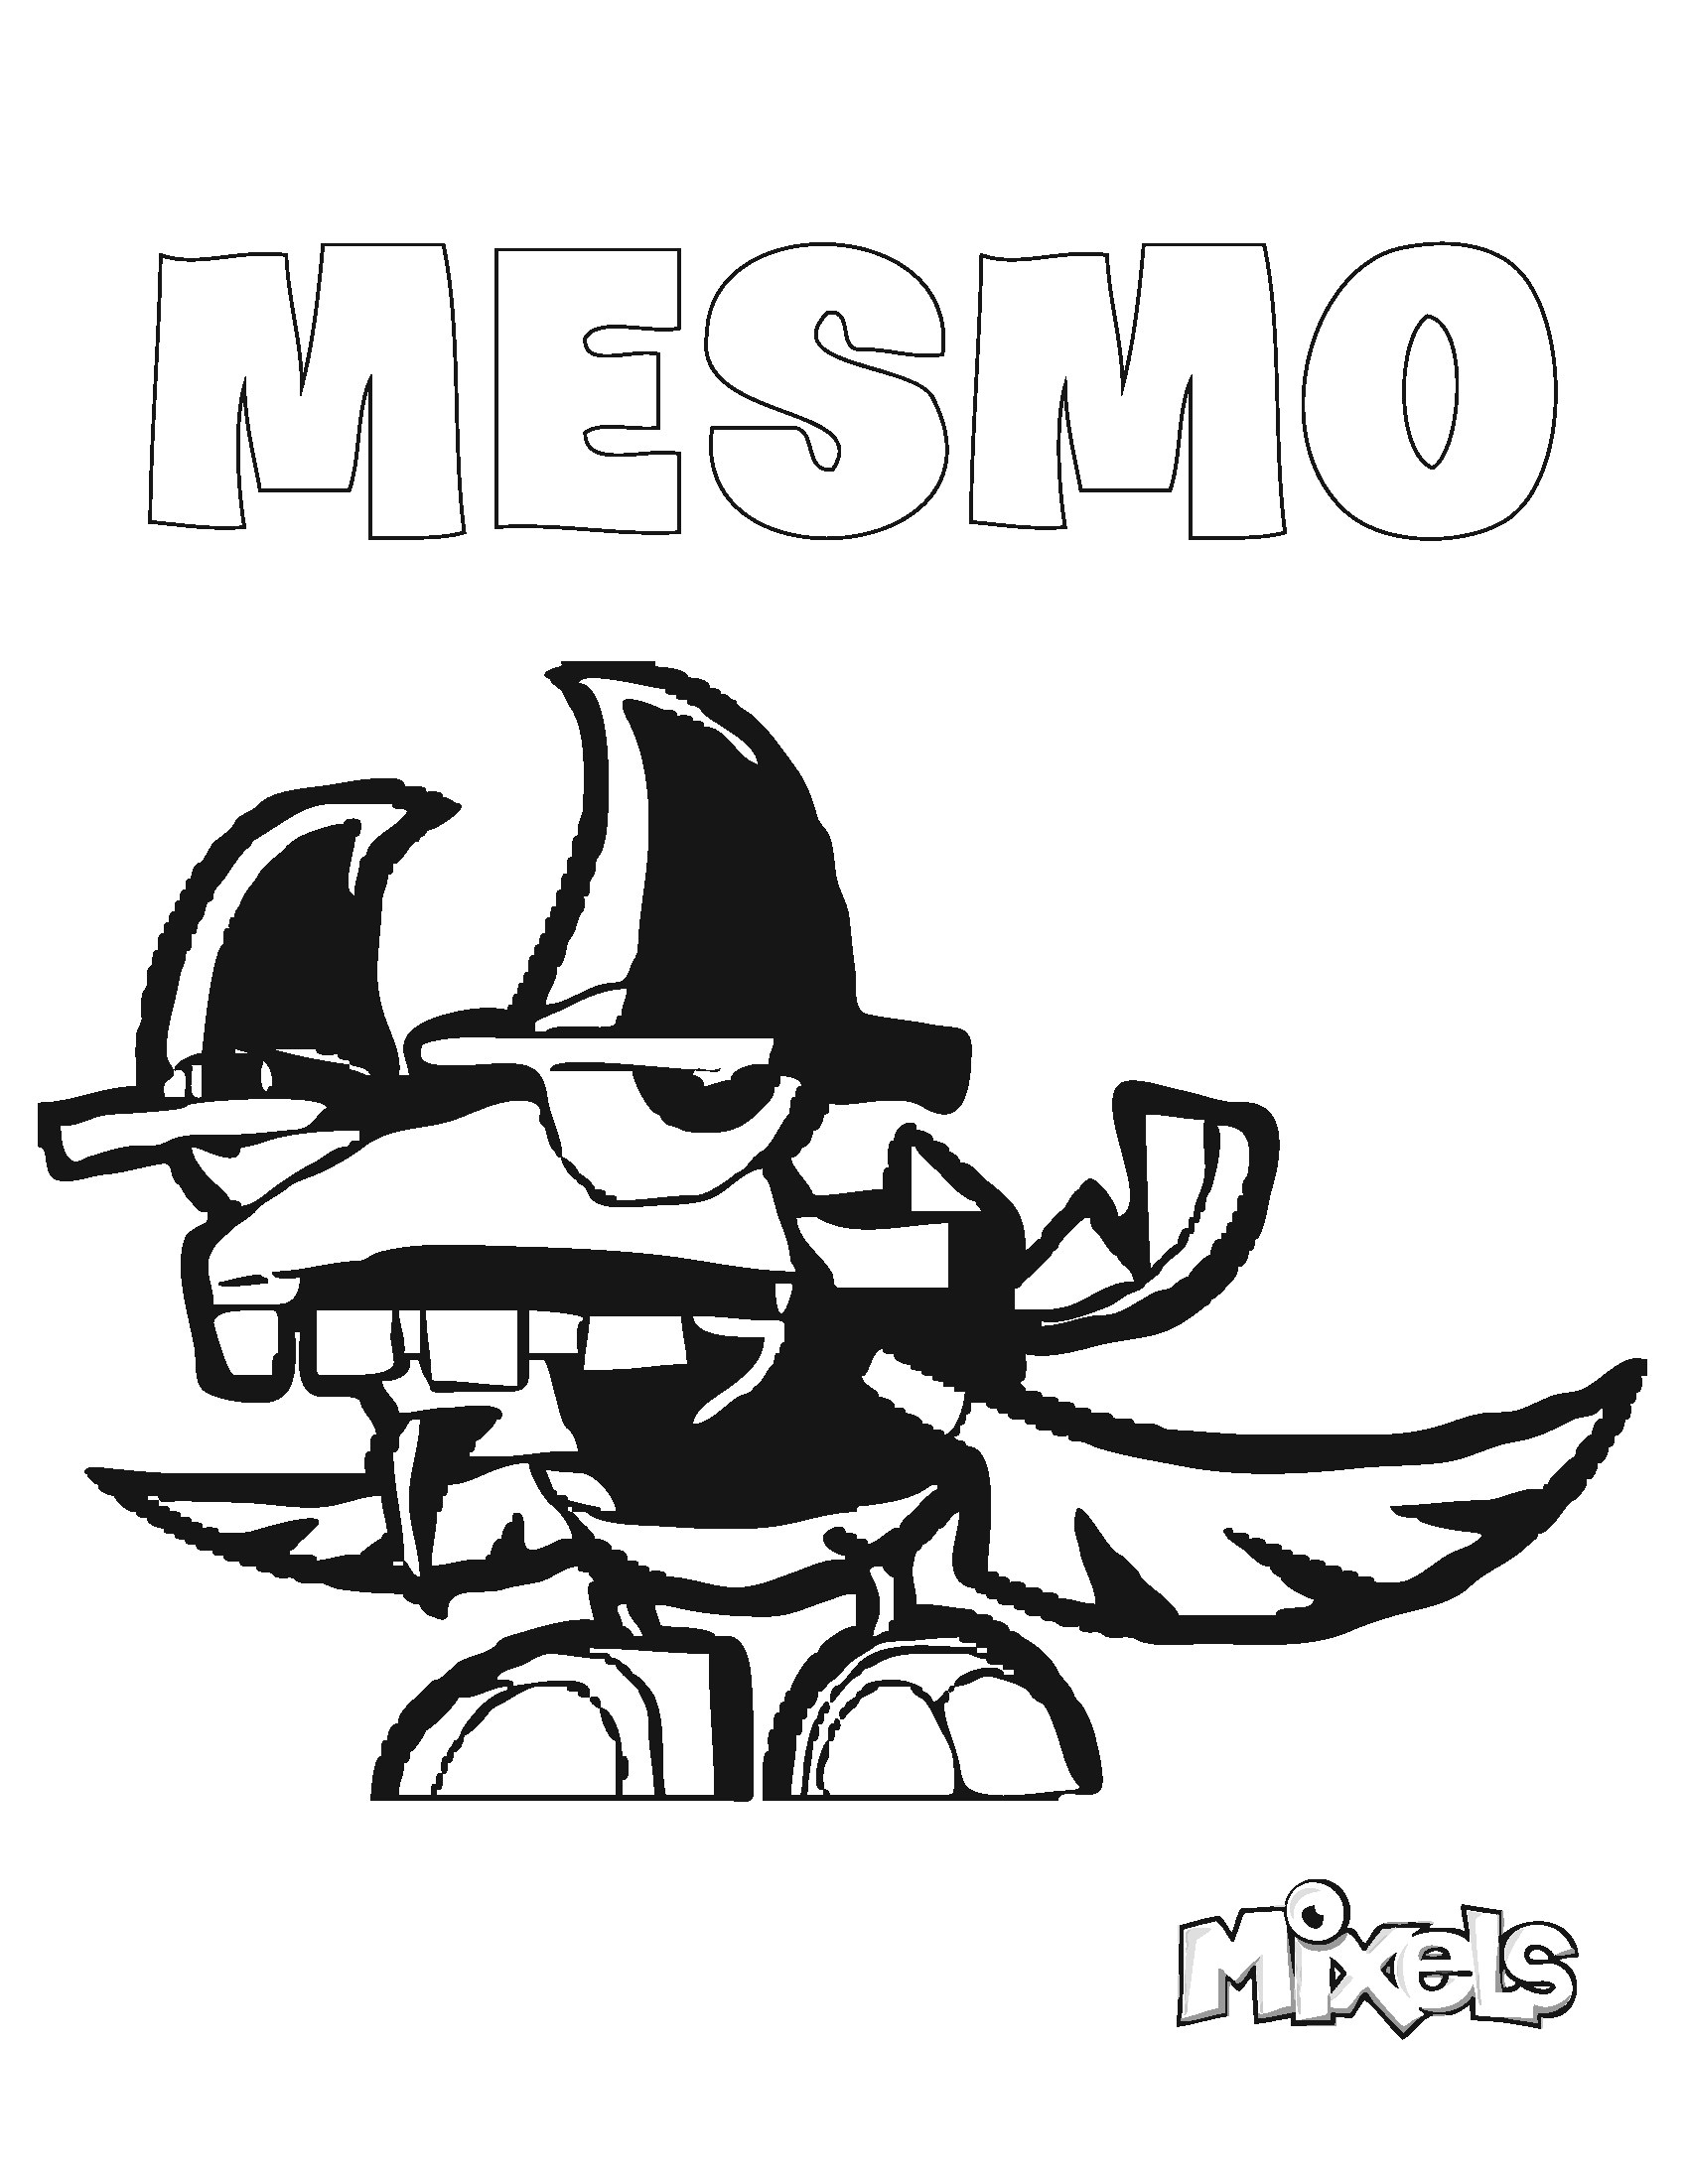 mixels coloring pages to print - photo#27